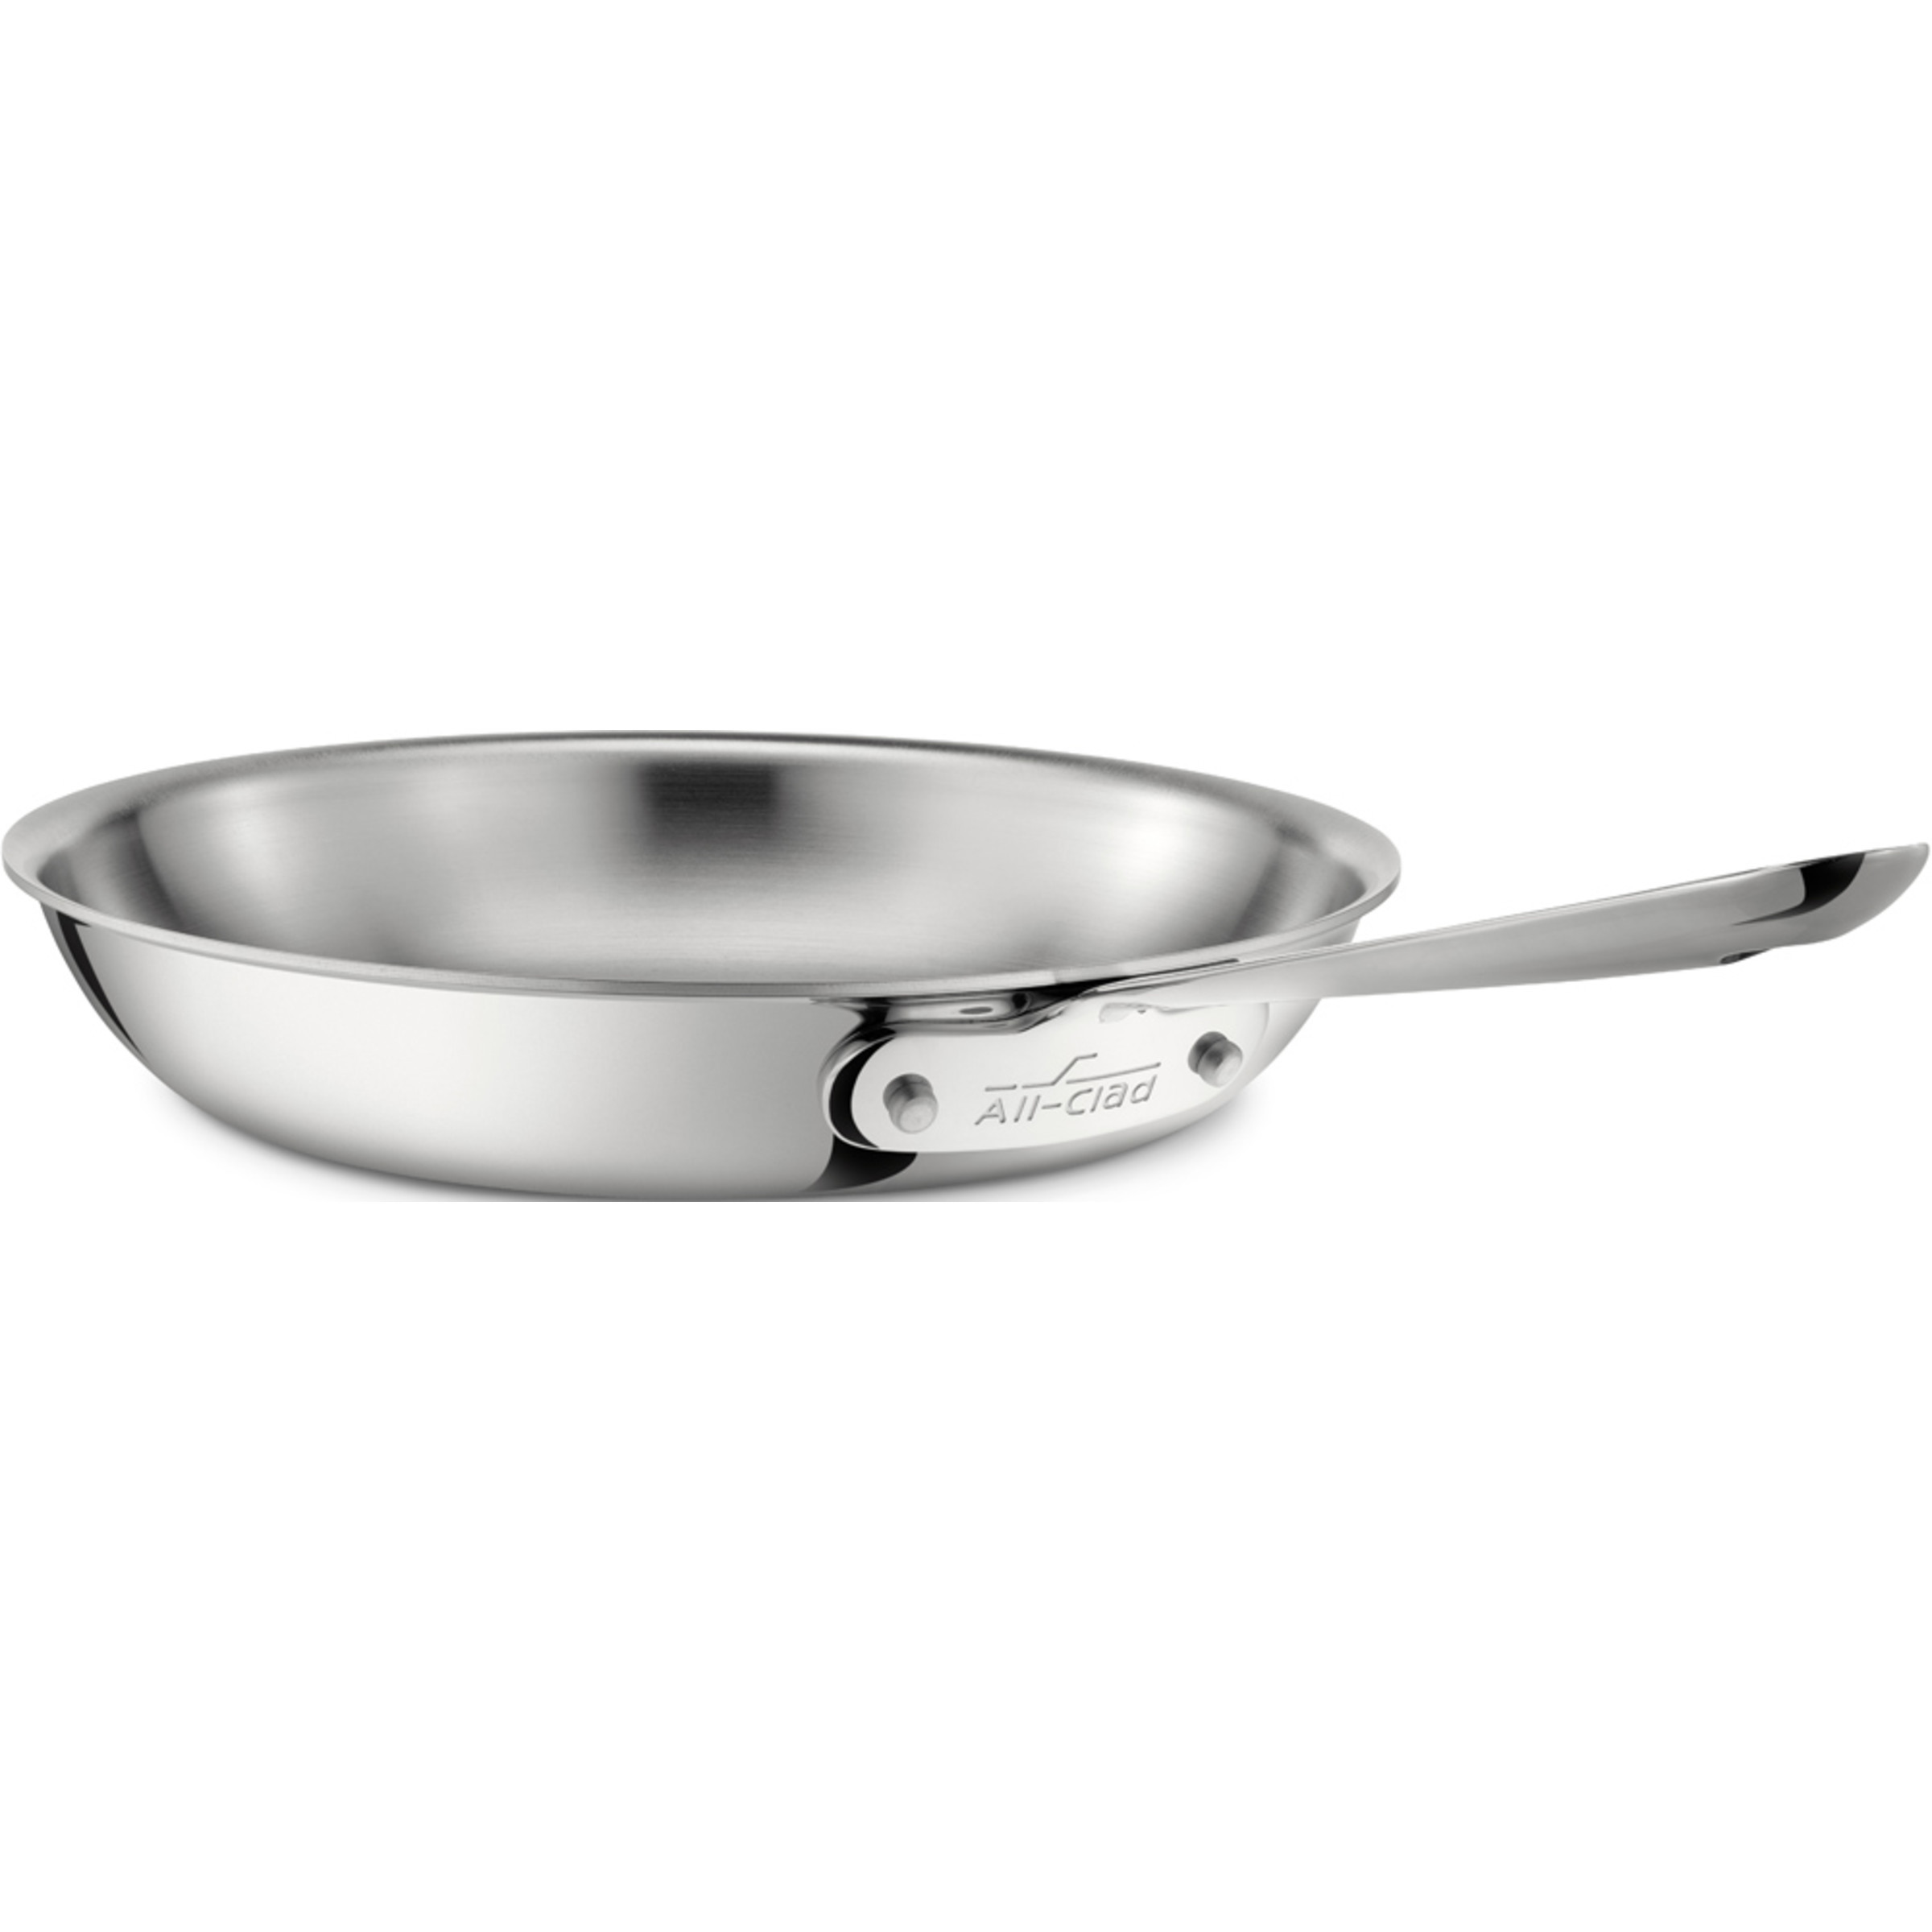 All Clad d3 Armor Stainless Steel 8 Inch Fry Pan